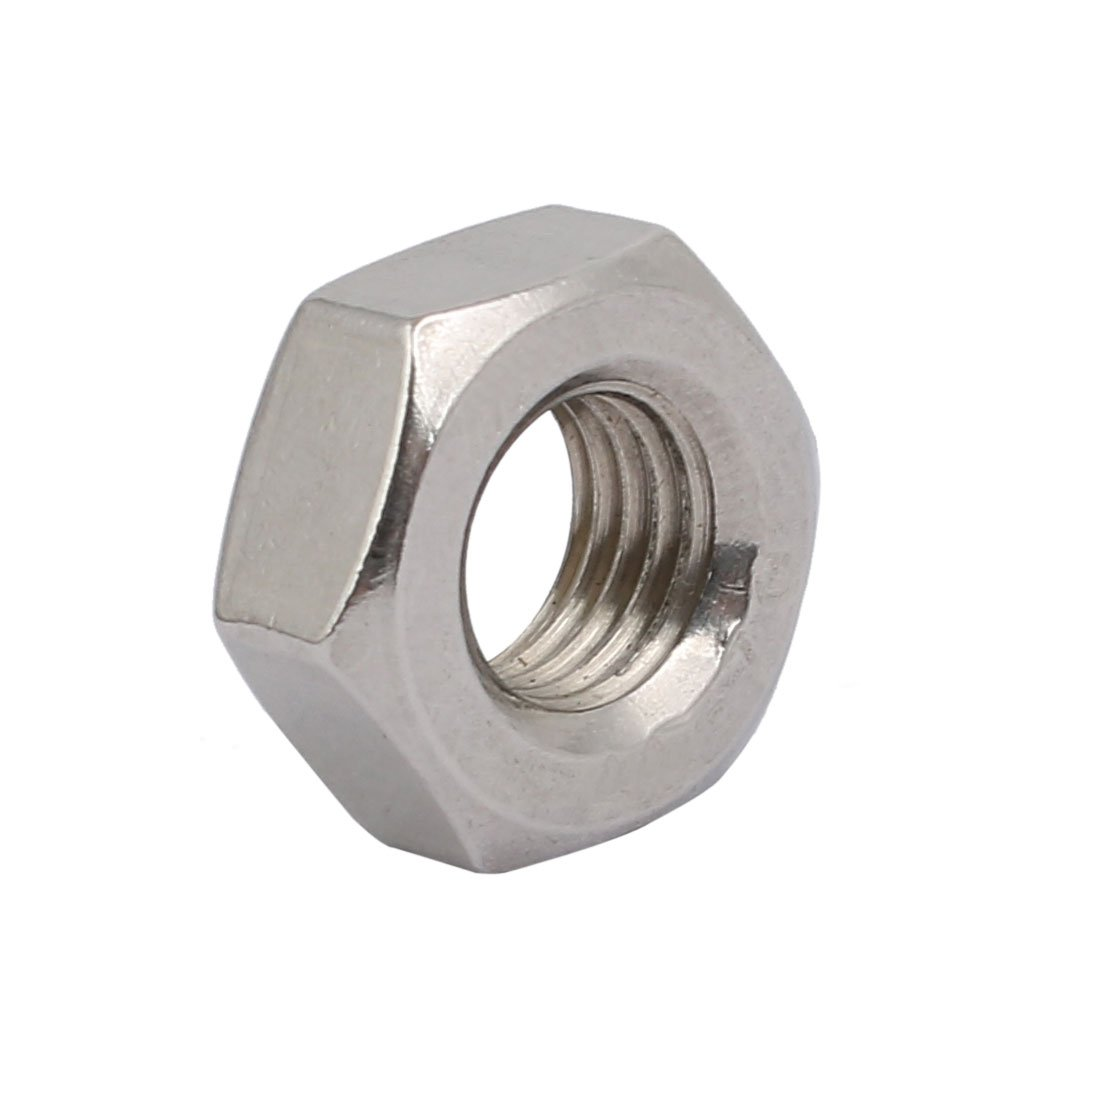 uxcell 4pcs M10 x 1.25mm Pitch Metric Fine Thread 304 Stainless Steel Hex Nuts